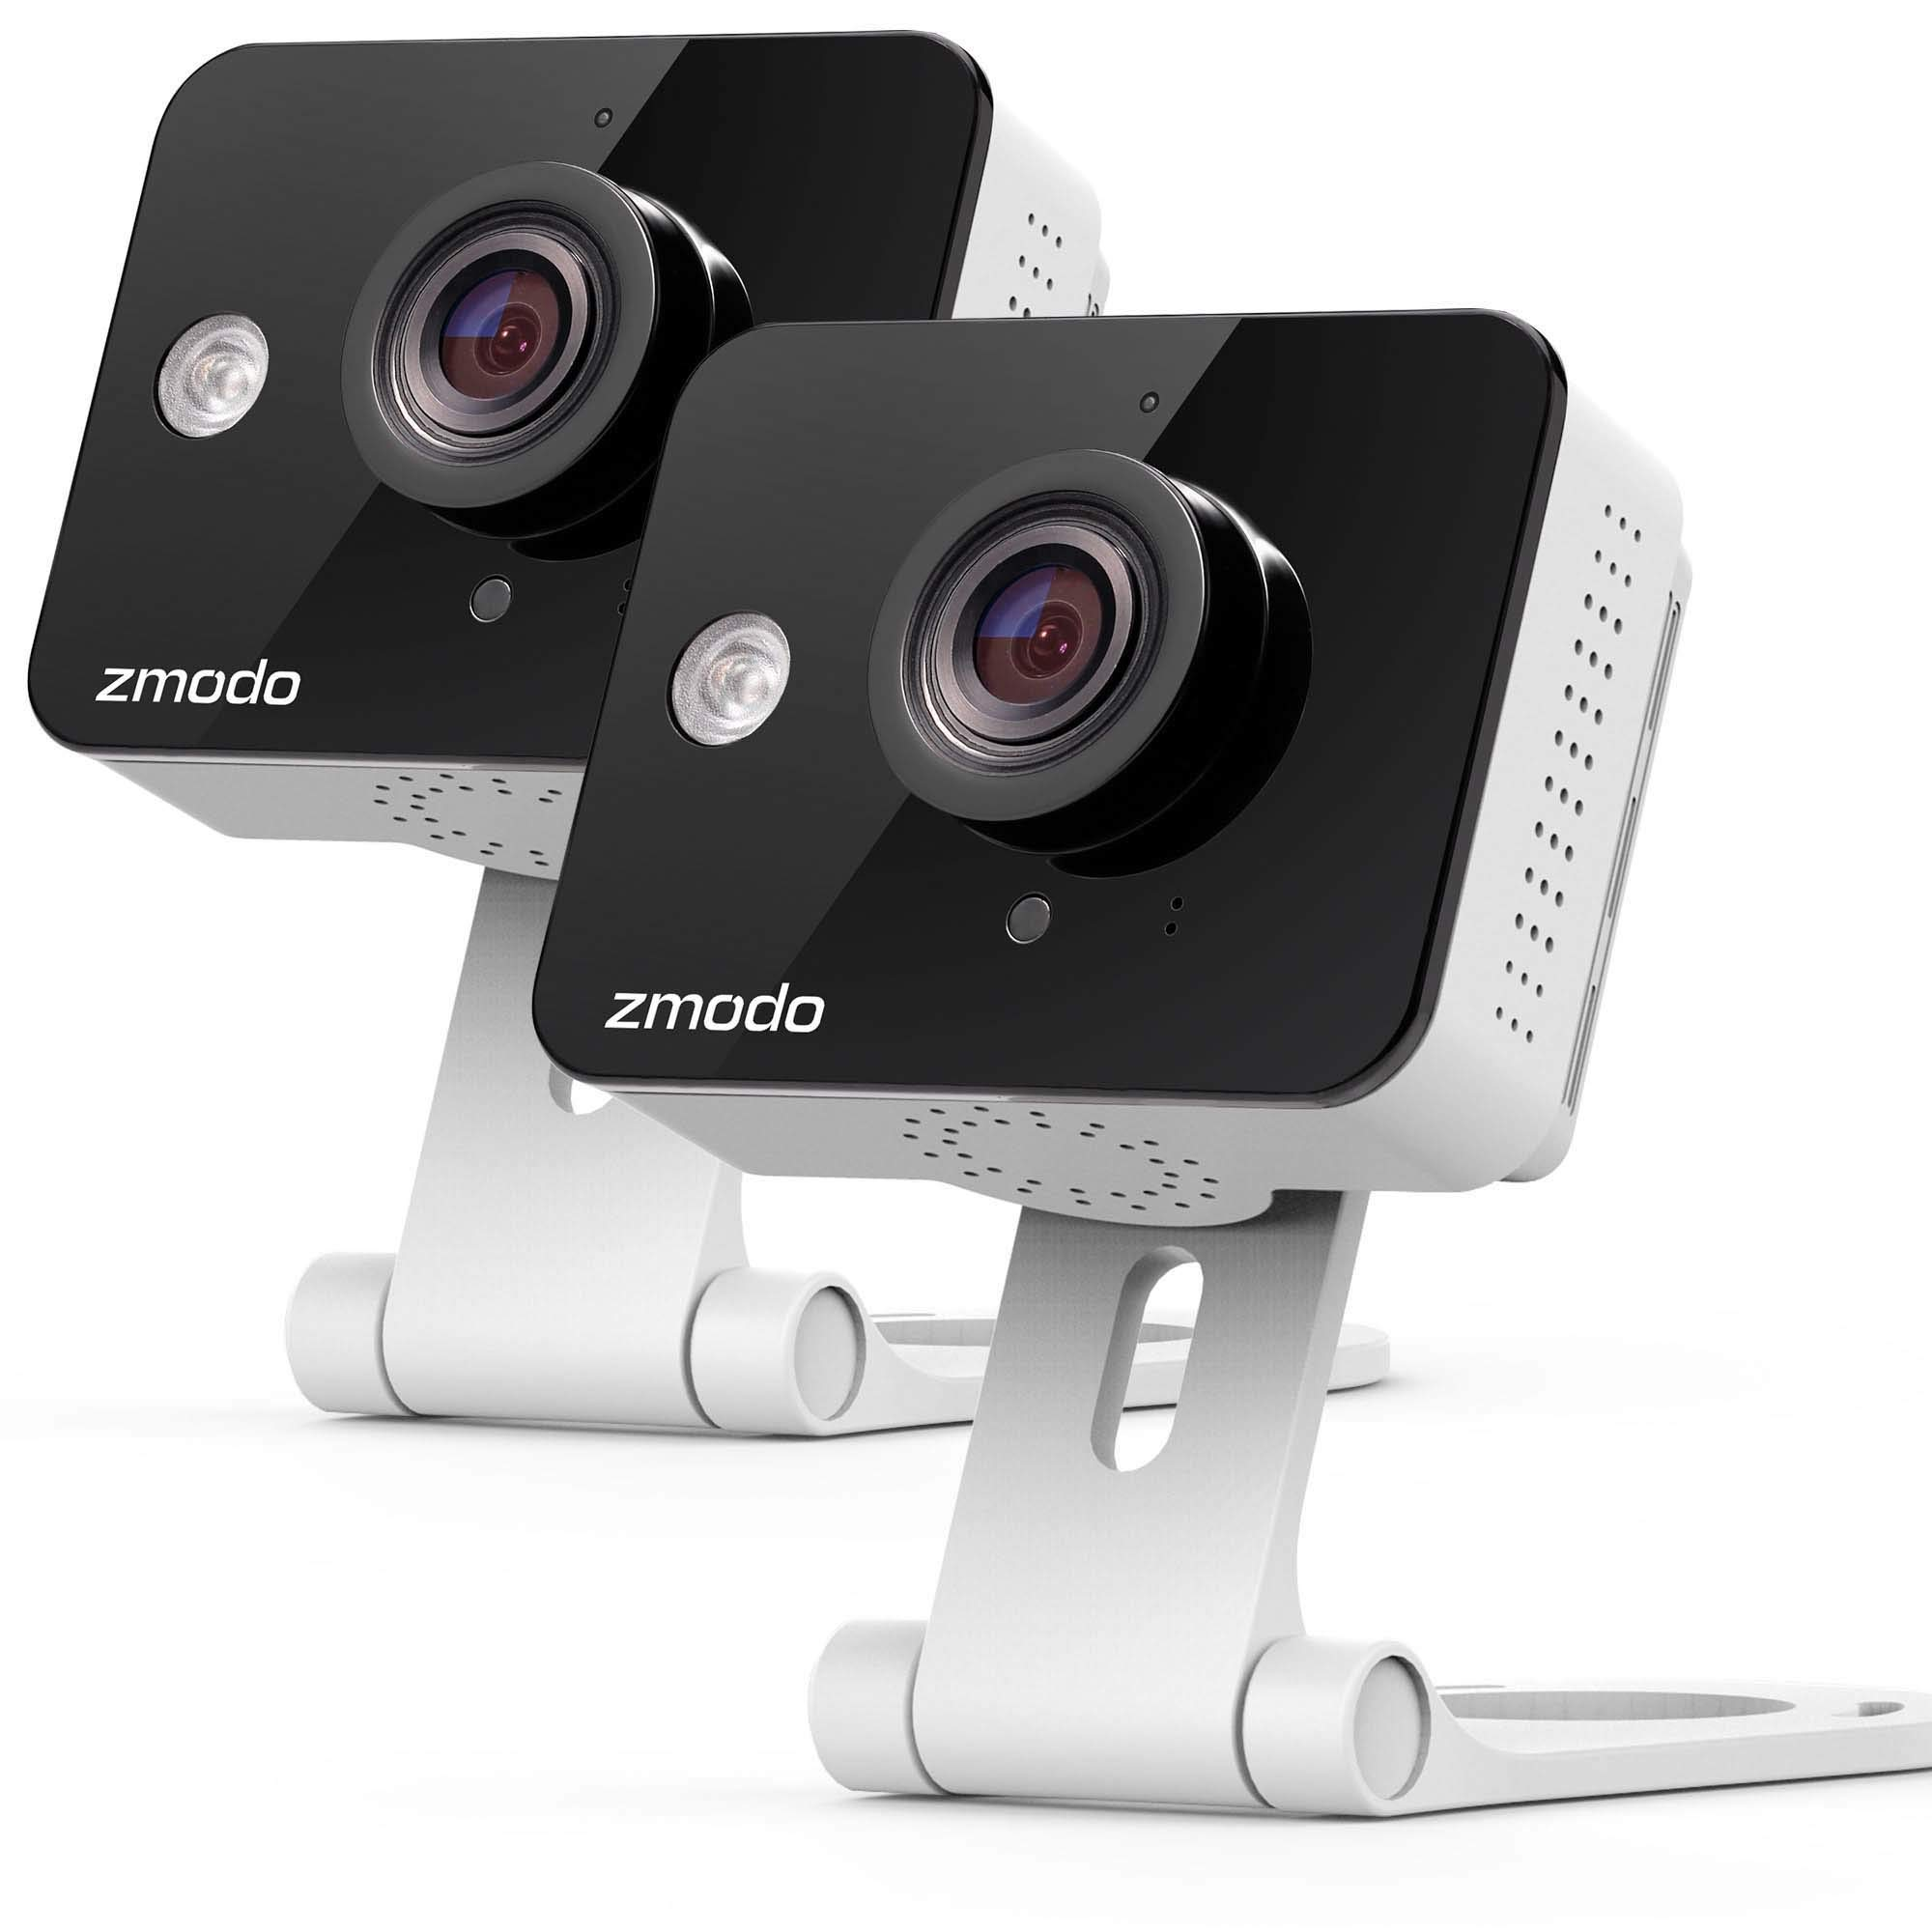 Zmodo 720P HD WiFi Wireless Smart Security Camera Two-Way Audio Work with Google Assistant (Non-Retail Packaging) by Zmodo